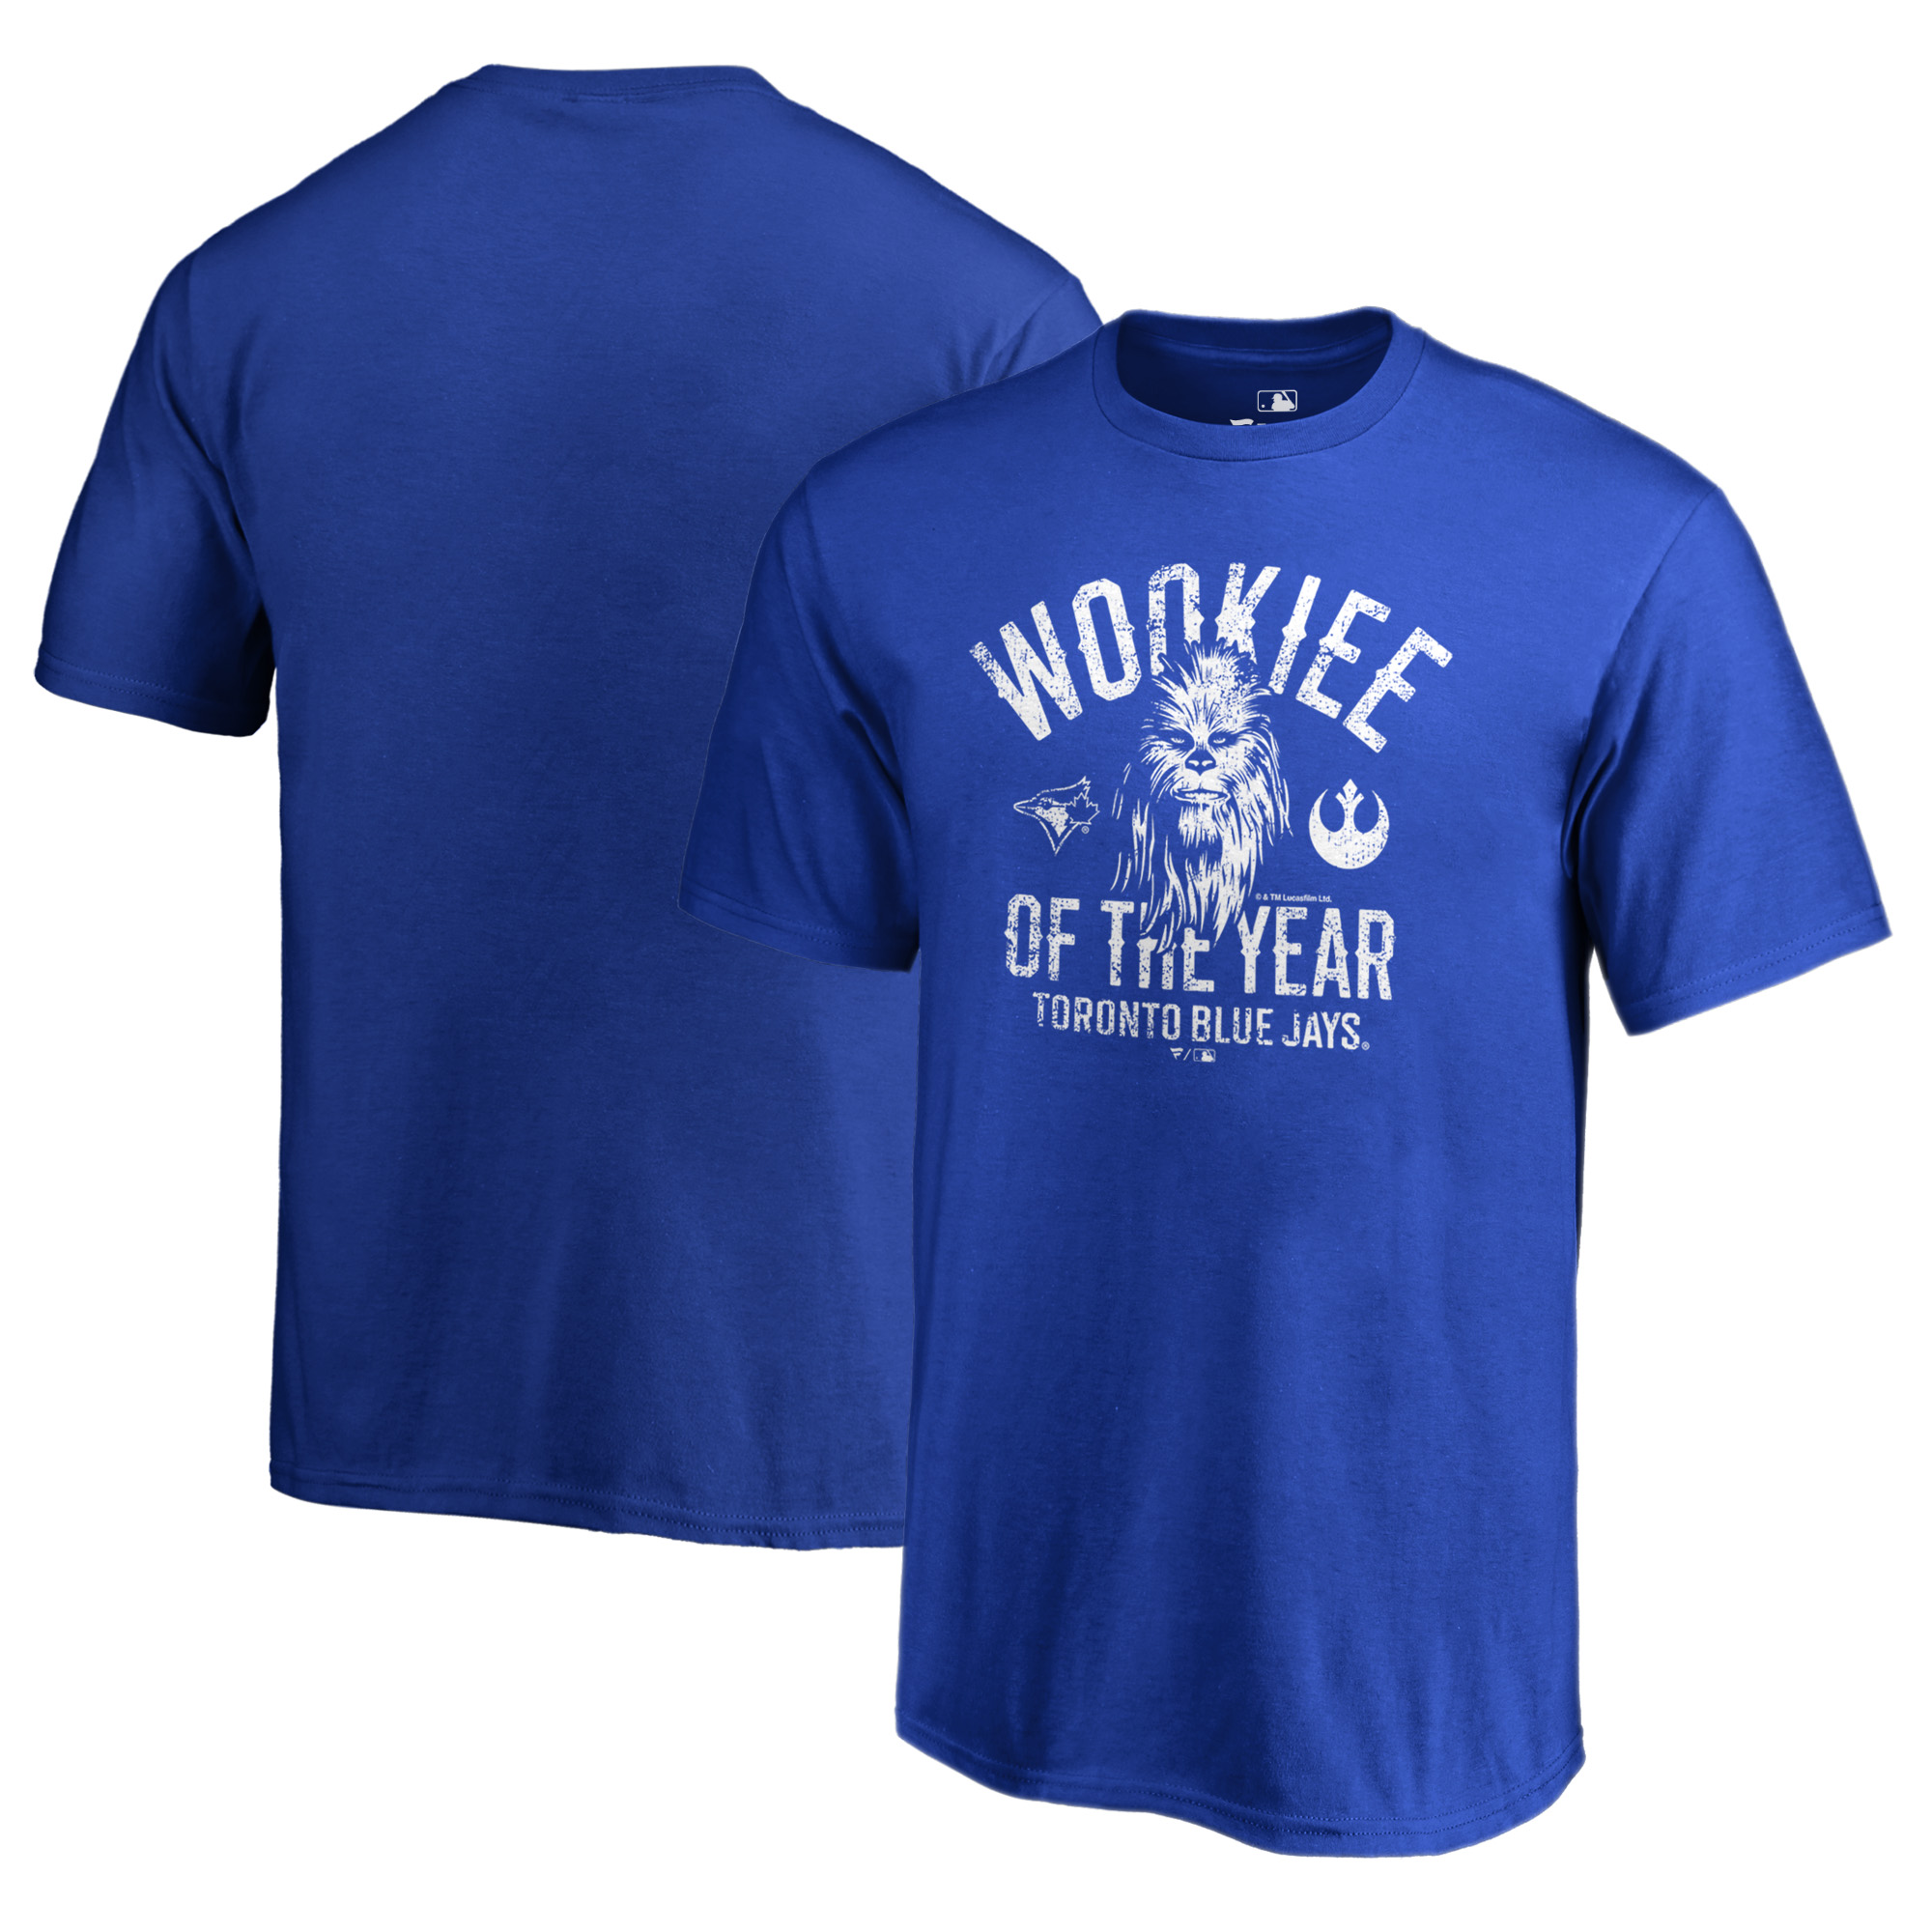 Toronto Blue Jays Fanatics Branded Youth Star Wars Wookiee Of The Year T-Shirt - Royal